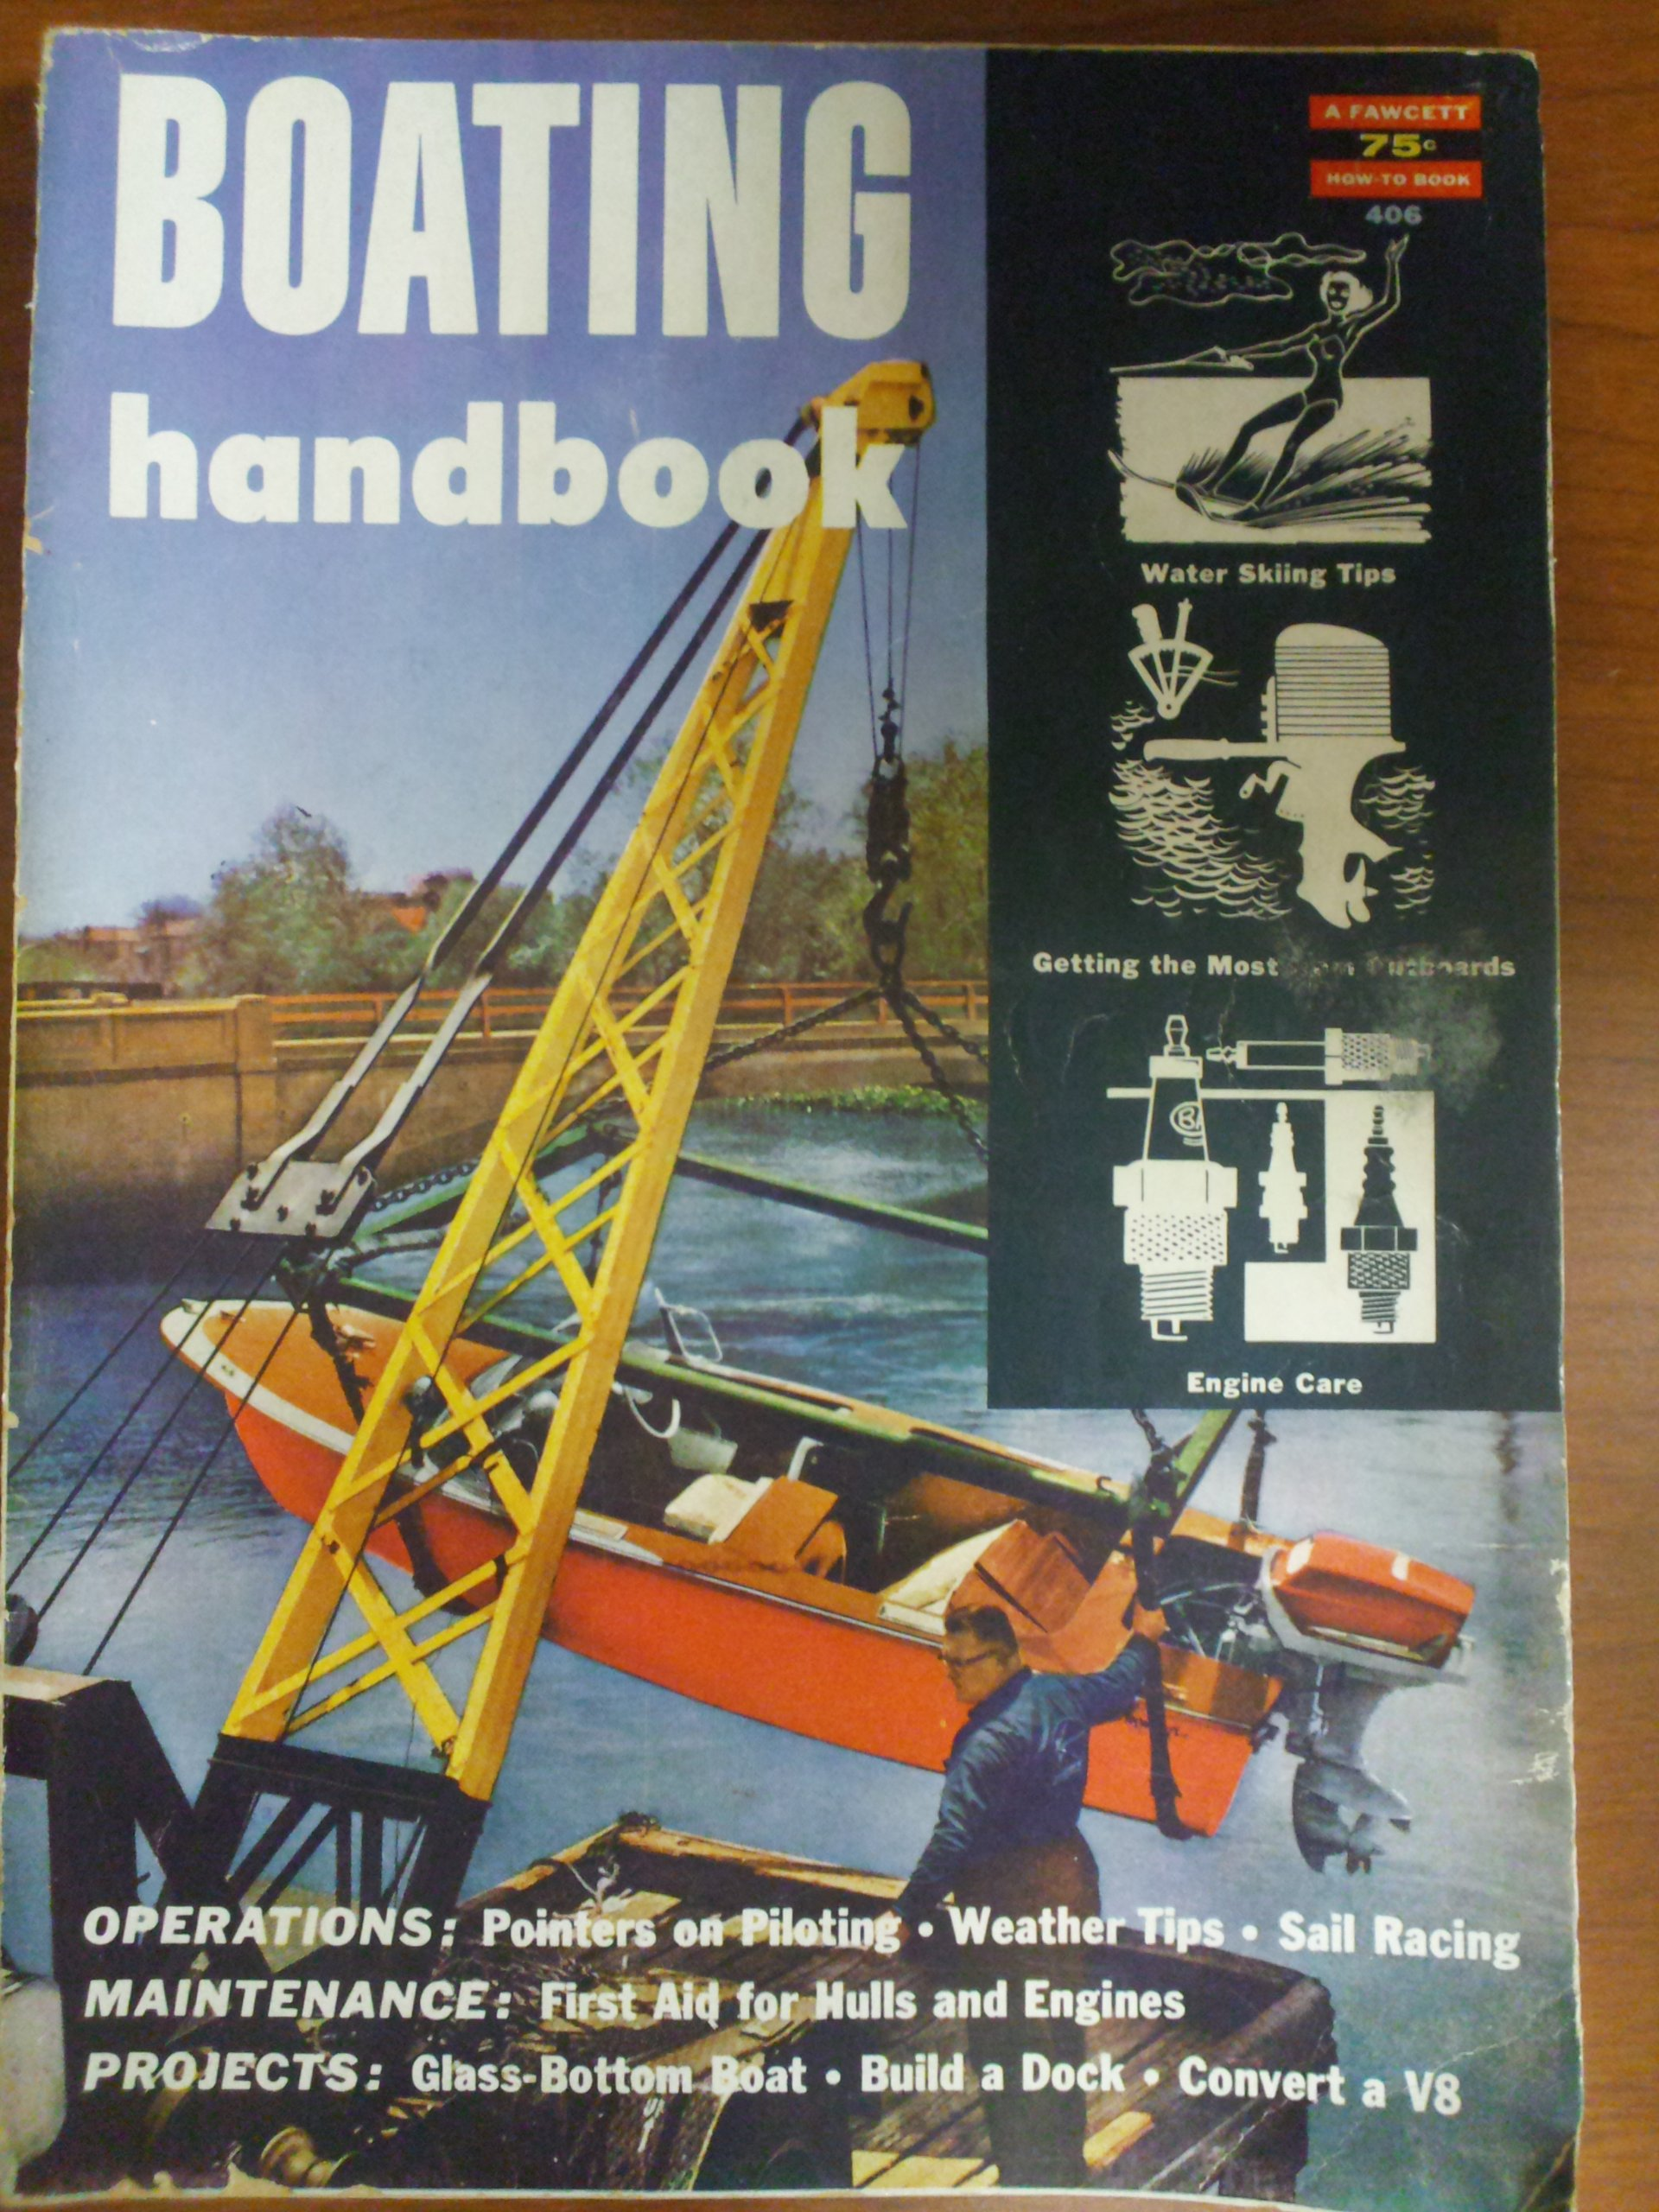 Image for Boating handbook (Fawcett publications;no.406)